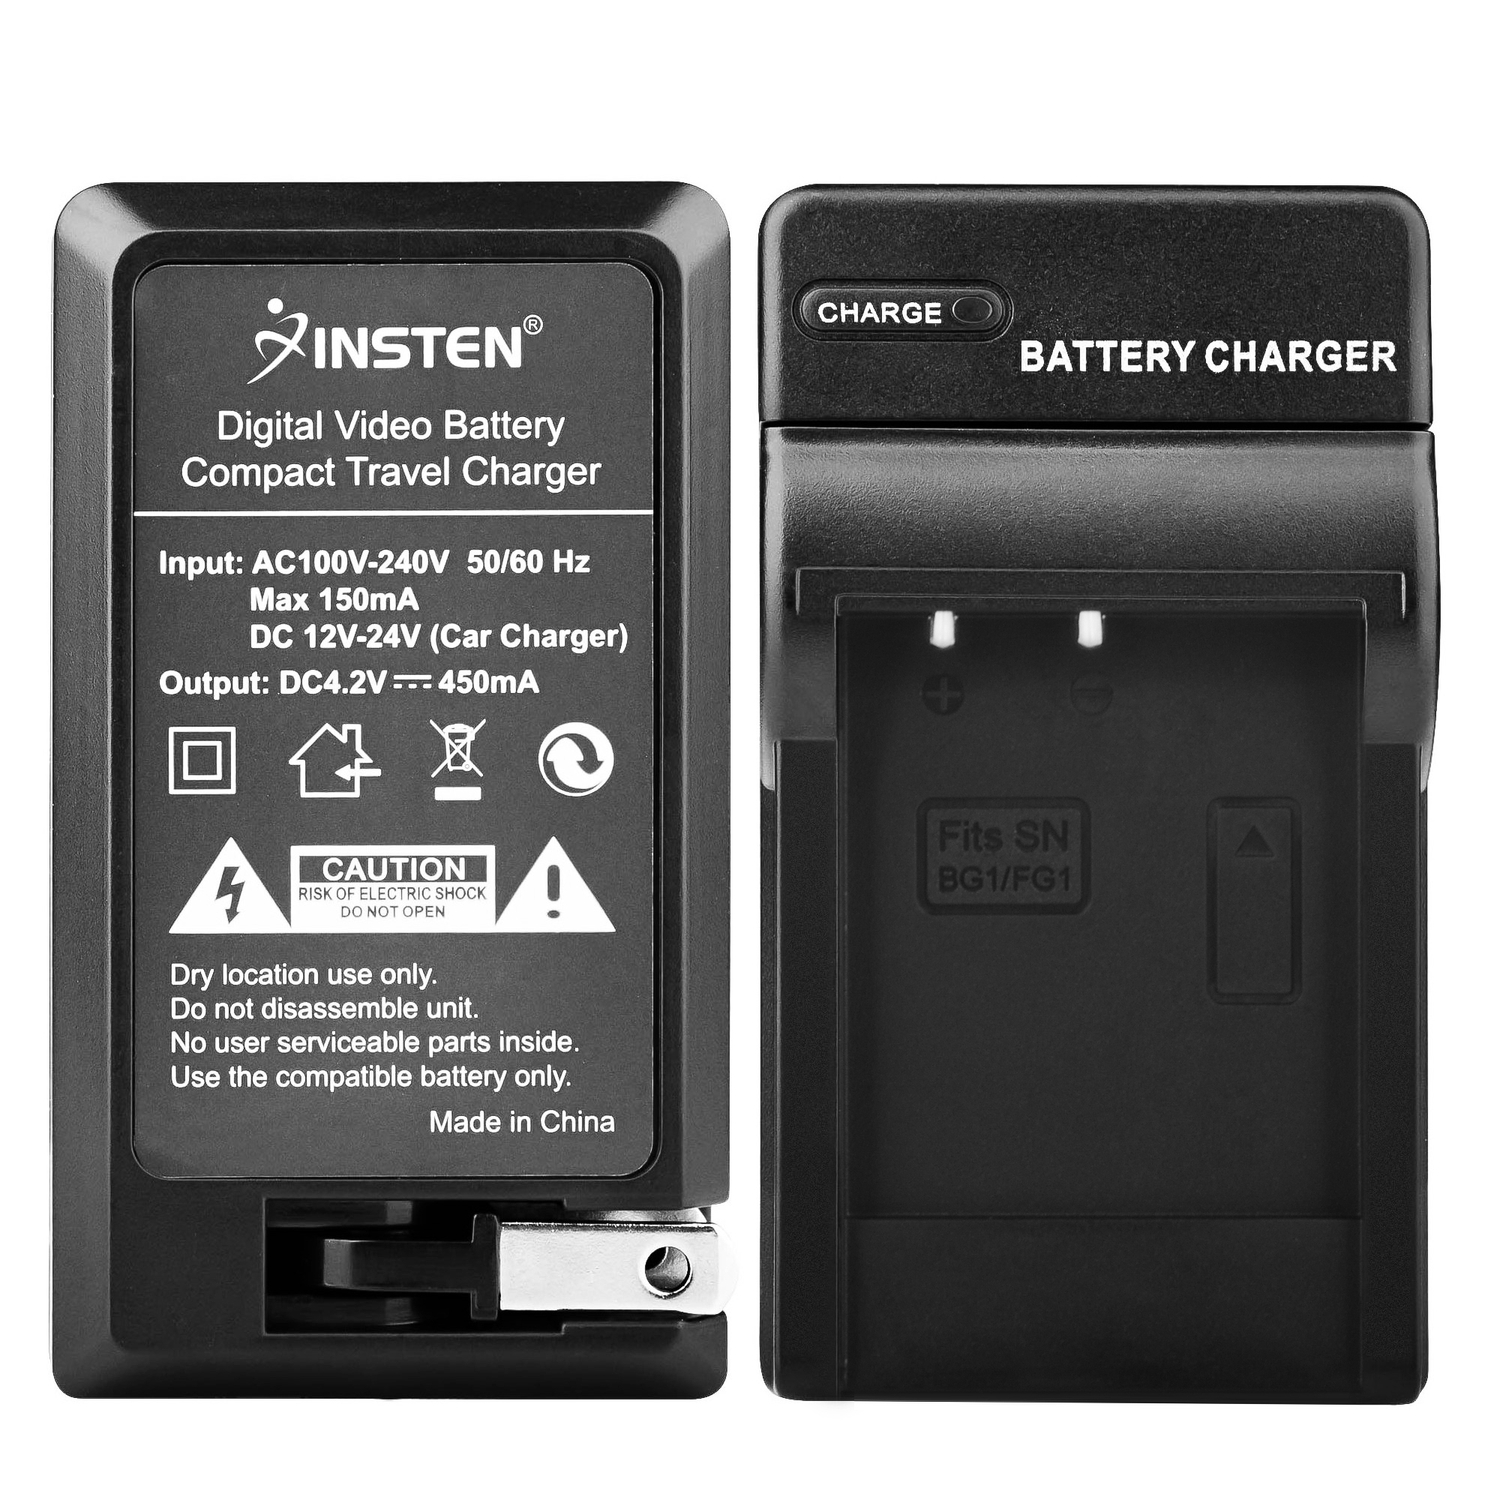 Insten Car Ac Wall Travel Charger Np Bg1 G Type Lithium Ion Battery Sony For Cybershot Dsc W80 W30 W55 W290 W300 H10 H20 H50 H55 H70 H90 H3 H7 H9